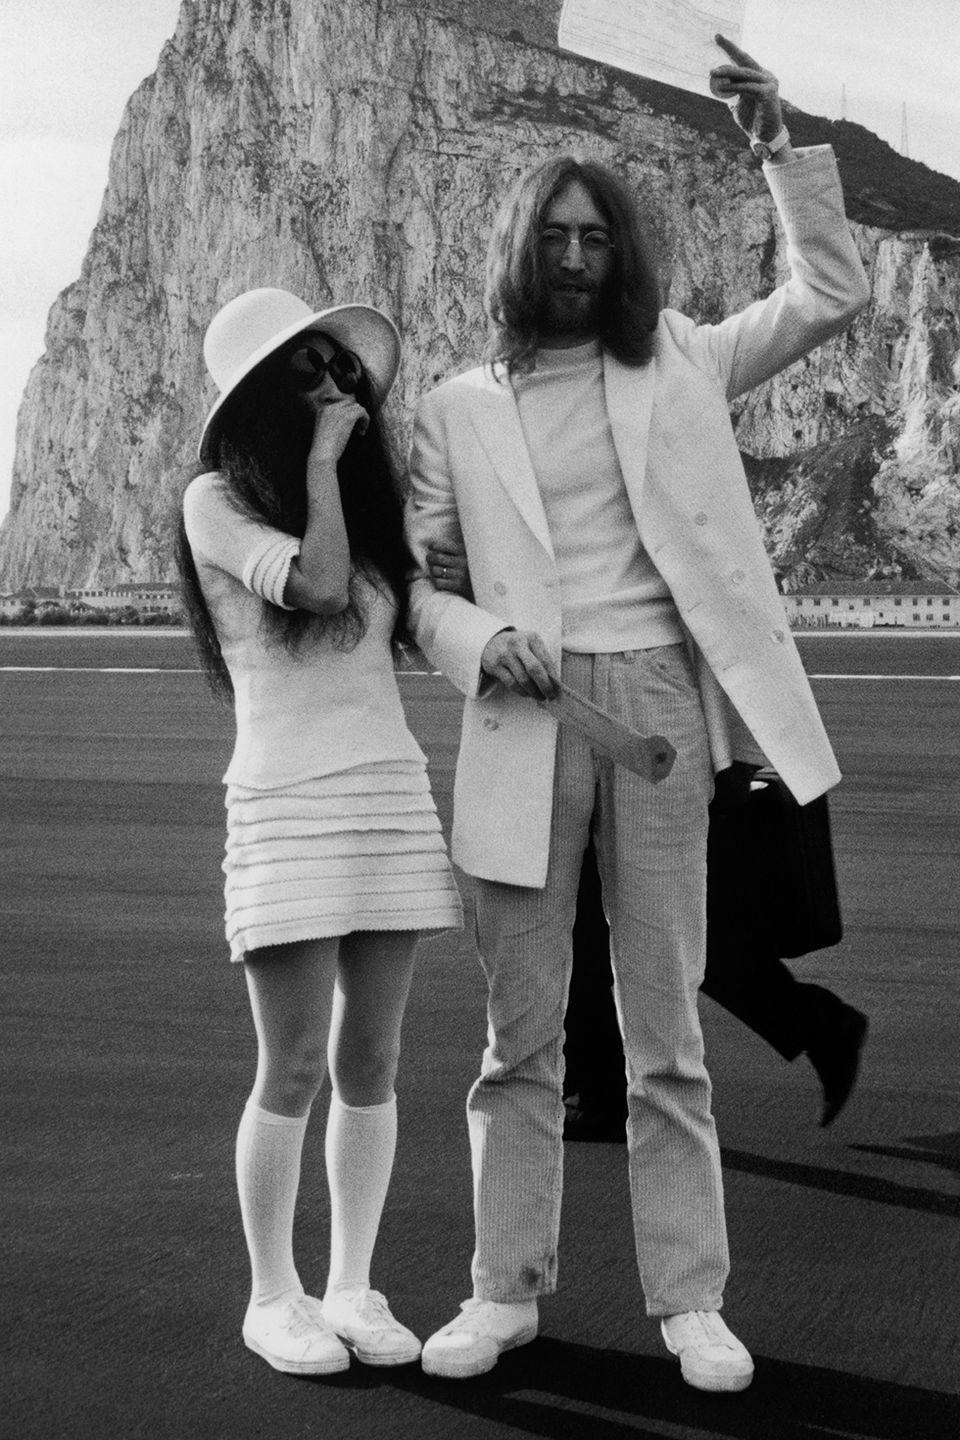 <p>Did you really think Yoko Ono would wear a conventional wedding dress to tie the knot with John Lennon? No way! The couple both wore white to the ceremony in Gibraltar. Yoko sported a miniskirt, top, floppy hat, and knee socks.</p>